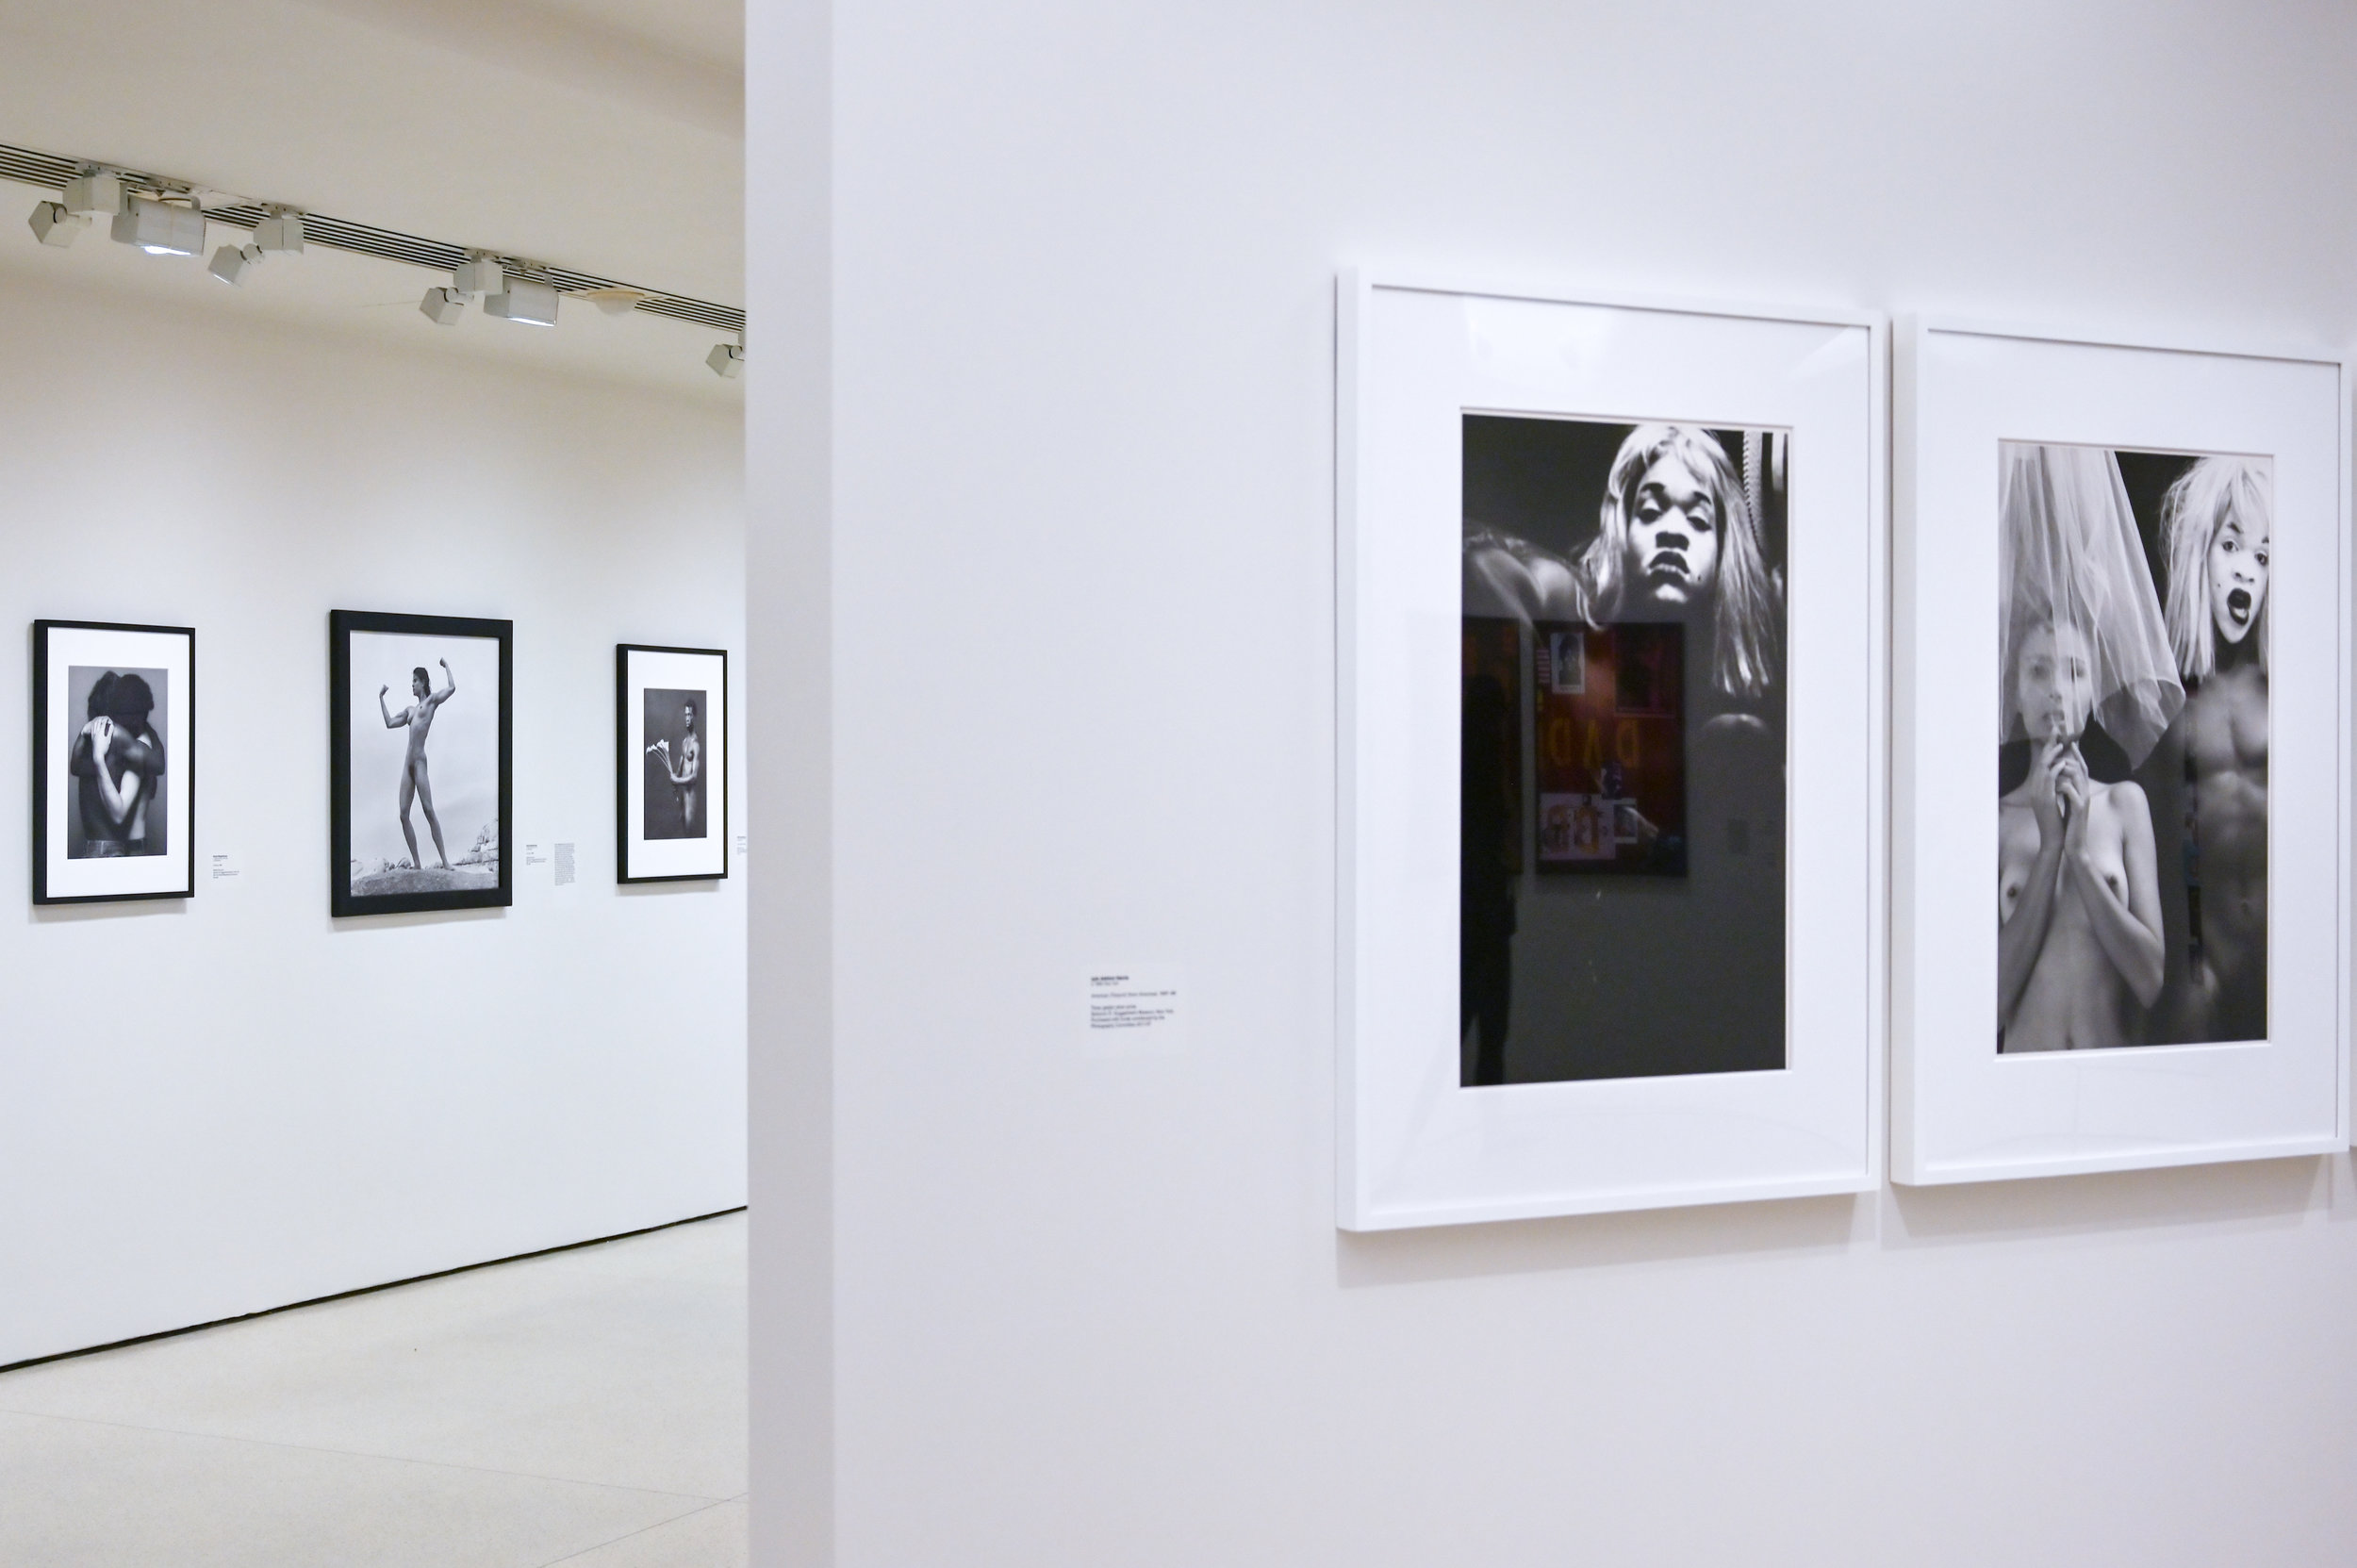 On the left side, Mapplethorpe's work. On the right side, Lyle Ashton Harris' pictures. © Federica Belli